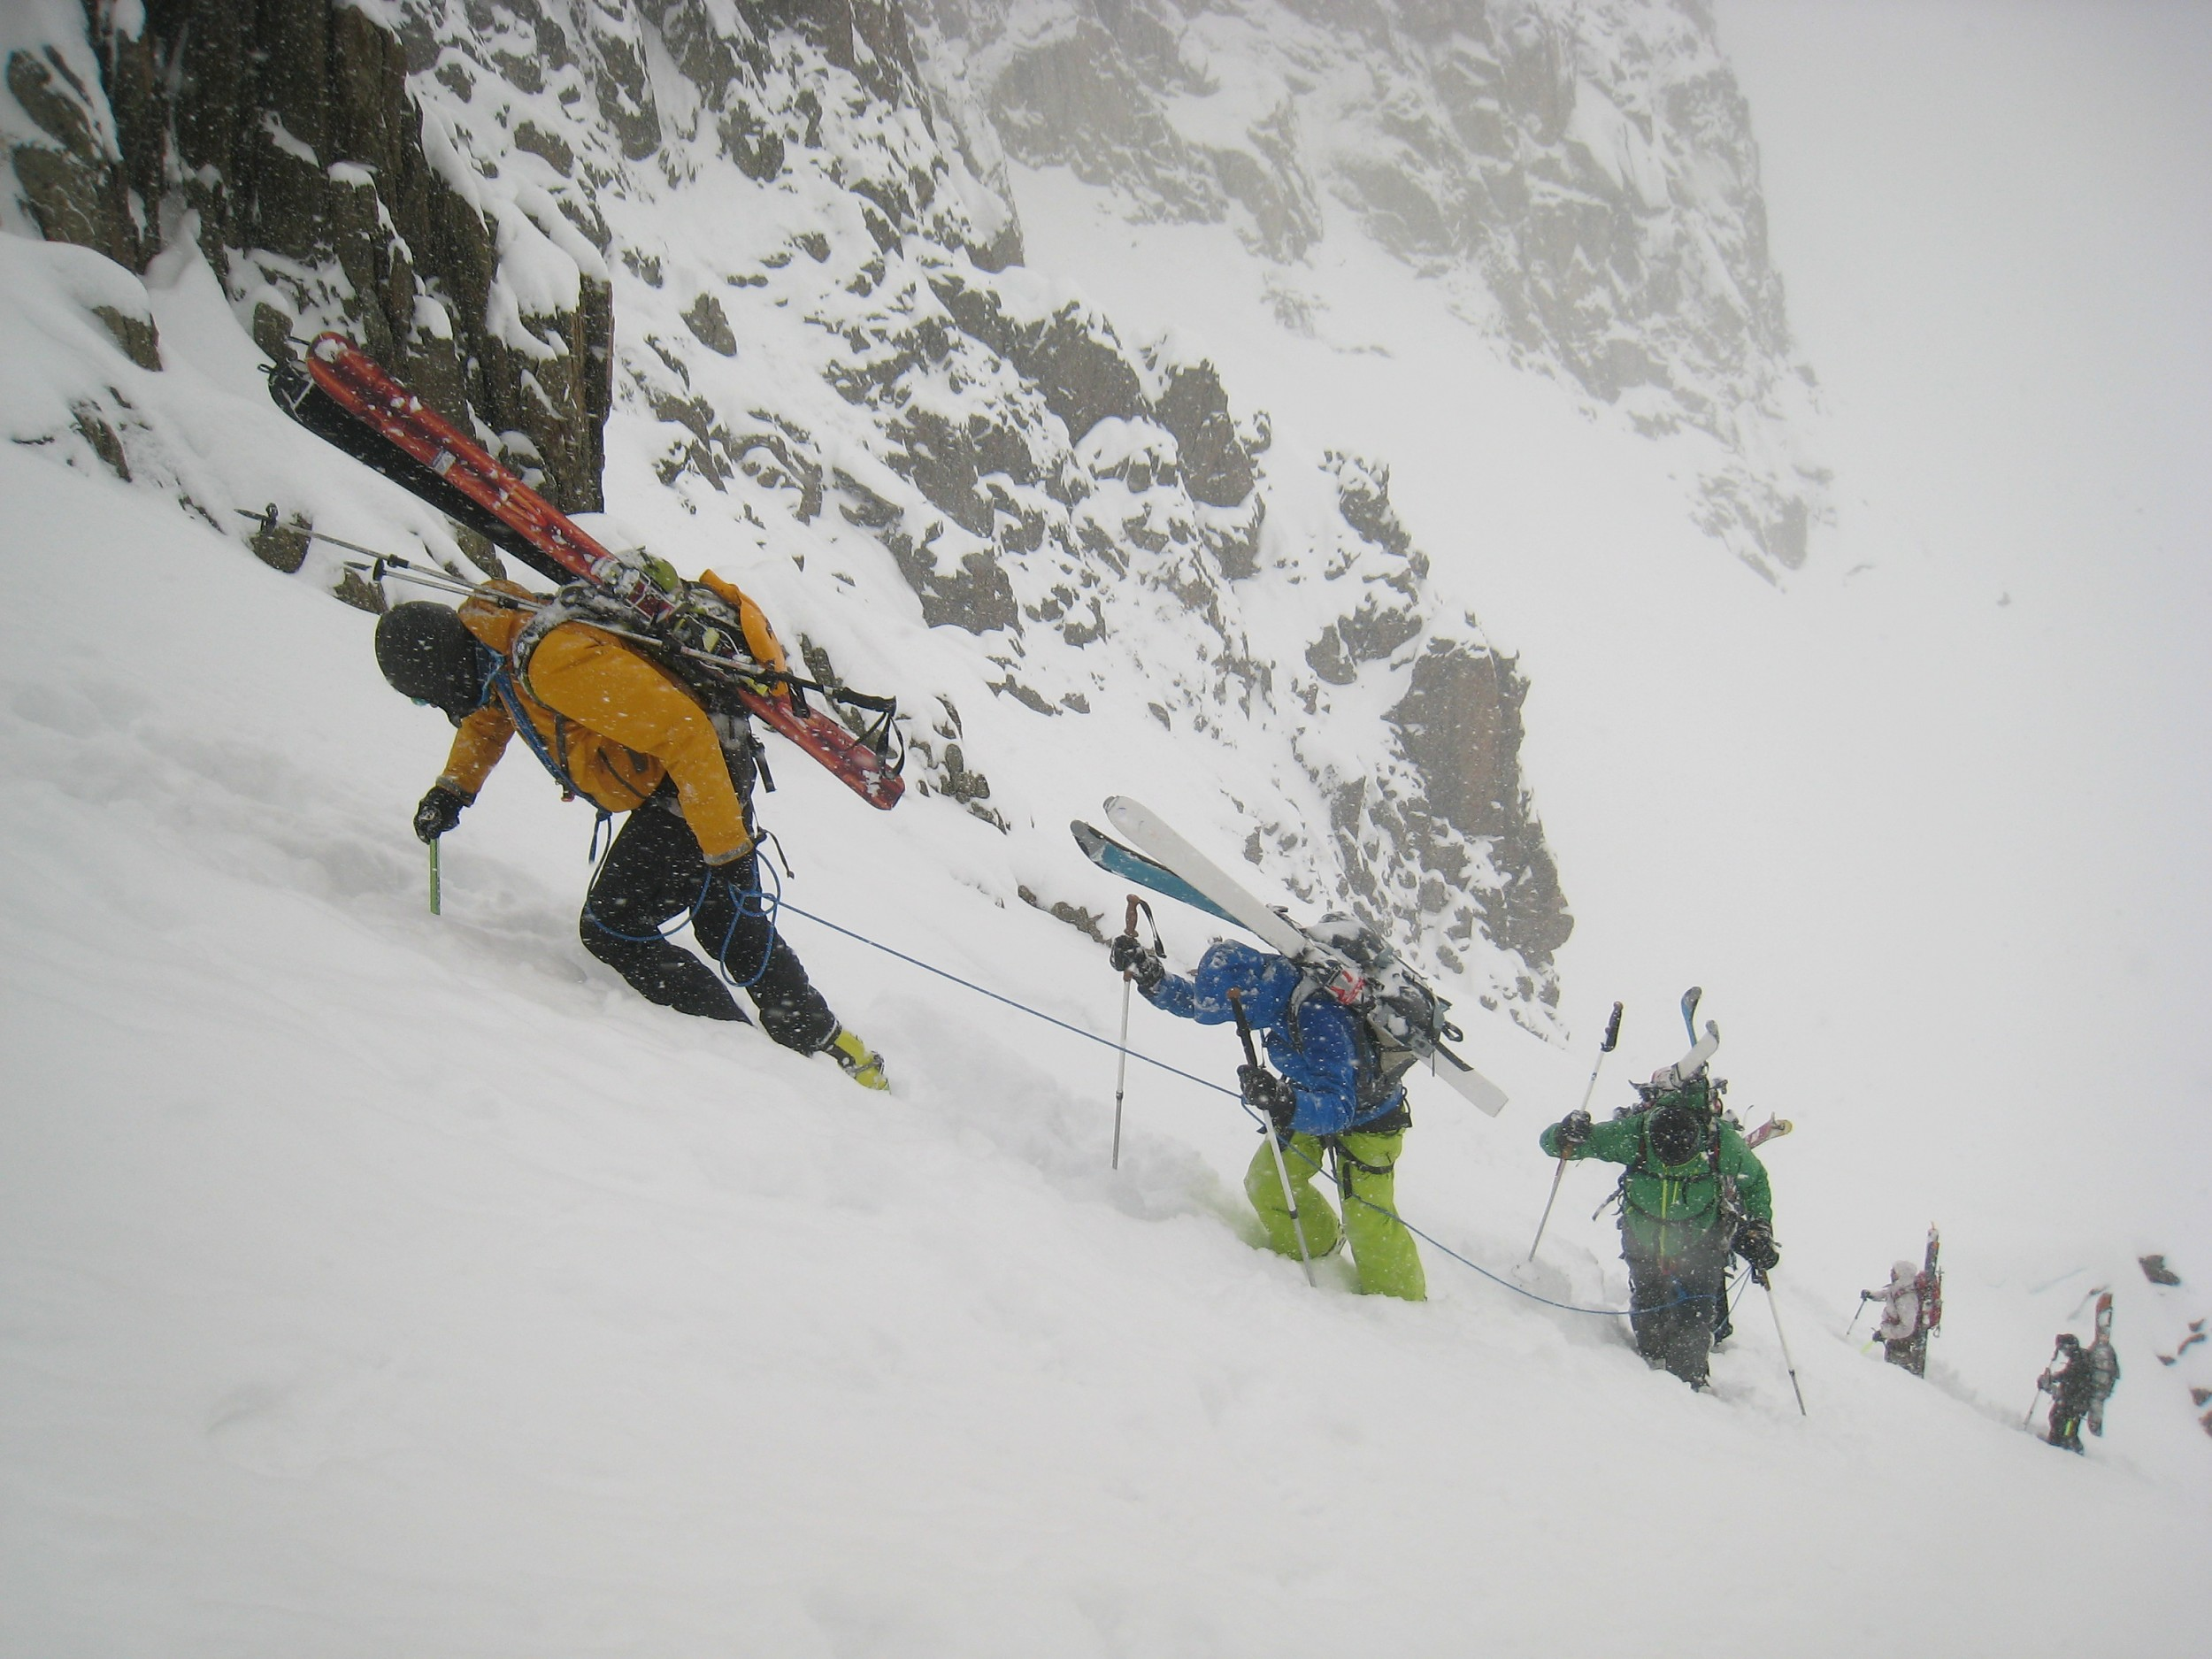 Ski touring/splitboarding course - Advanced